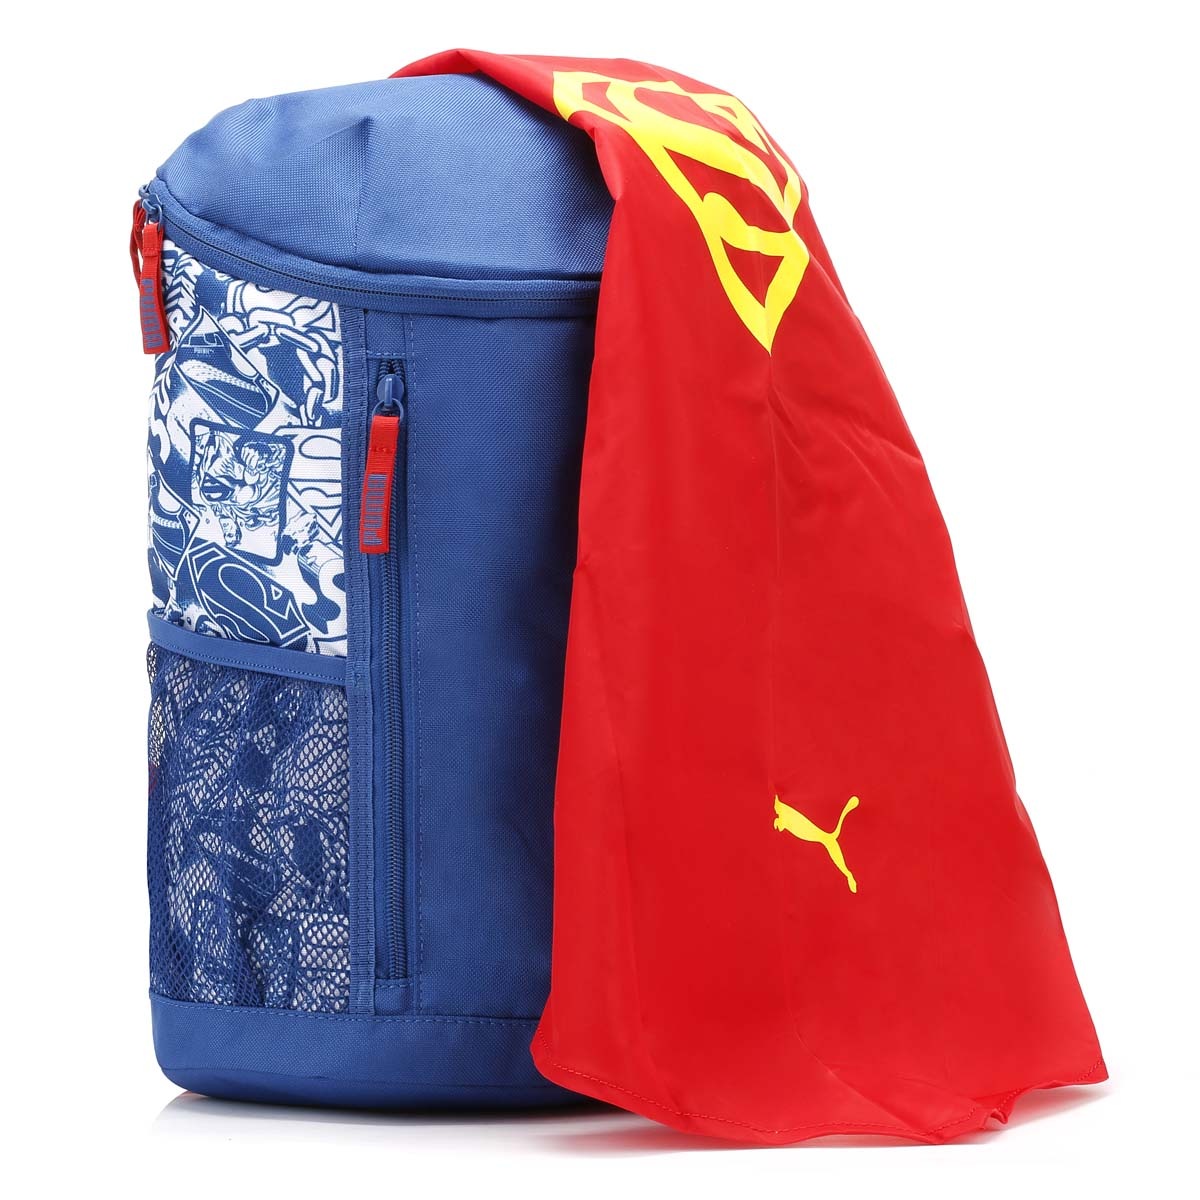 9249566377cad Complete with a concealed Superman cape that can be pulled out from a  hidden compartment